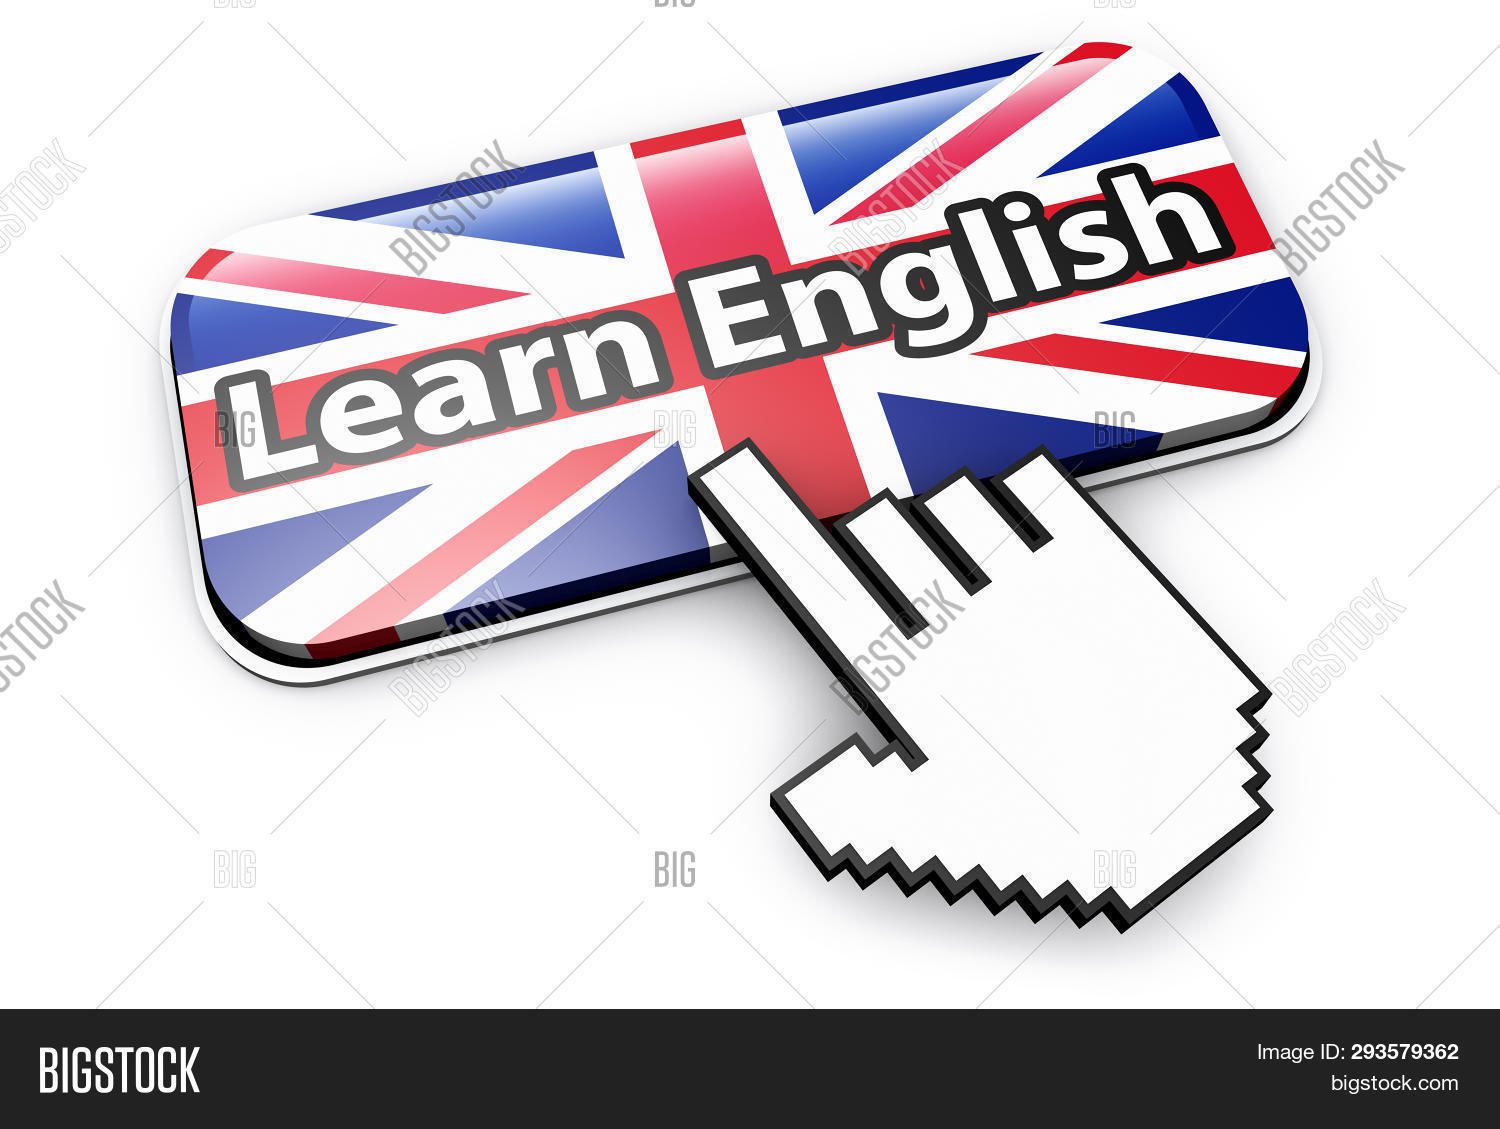 3d,abc,abstract,background,business,button,class,click,clicking,close,closeup,computer,concept,course,cursor,e-learning,education,educational,elearning,english,flag,hand,icon,illustration,internet,isolated,jack,key,language,learn,learning,lesson,online,school,seminar,sign,speak,study,symbol,text,training,uk,union,up,web,website,white